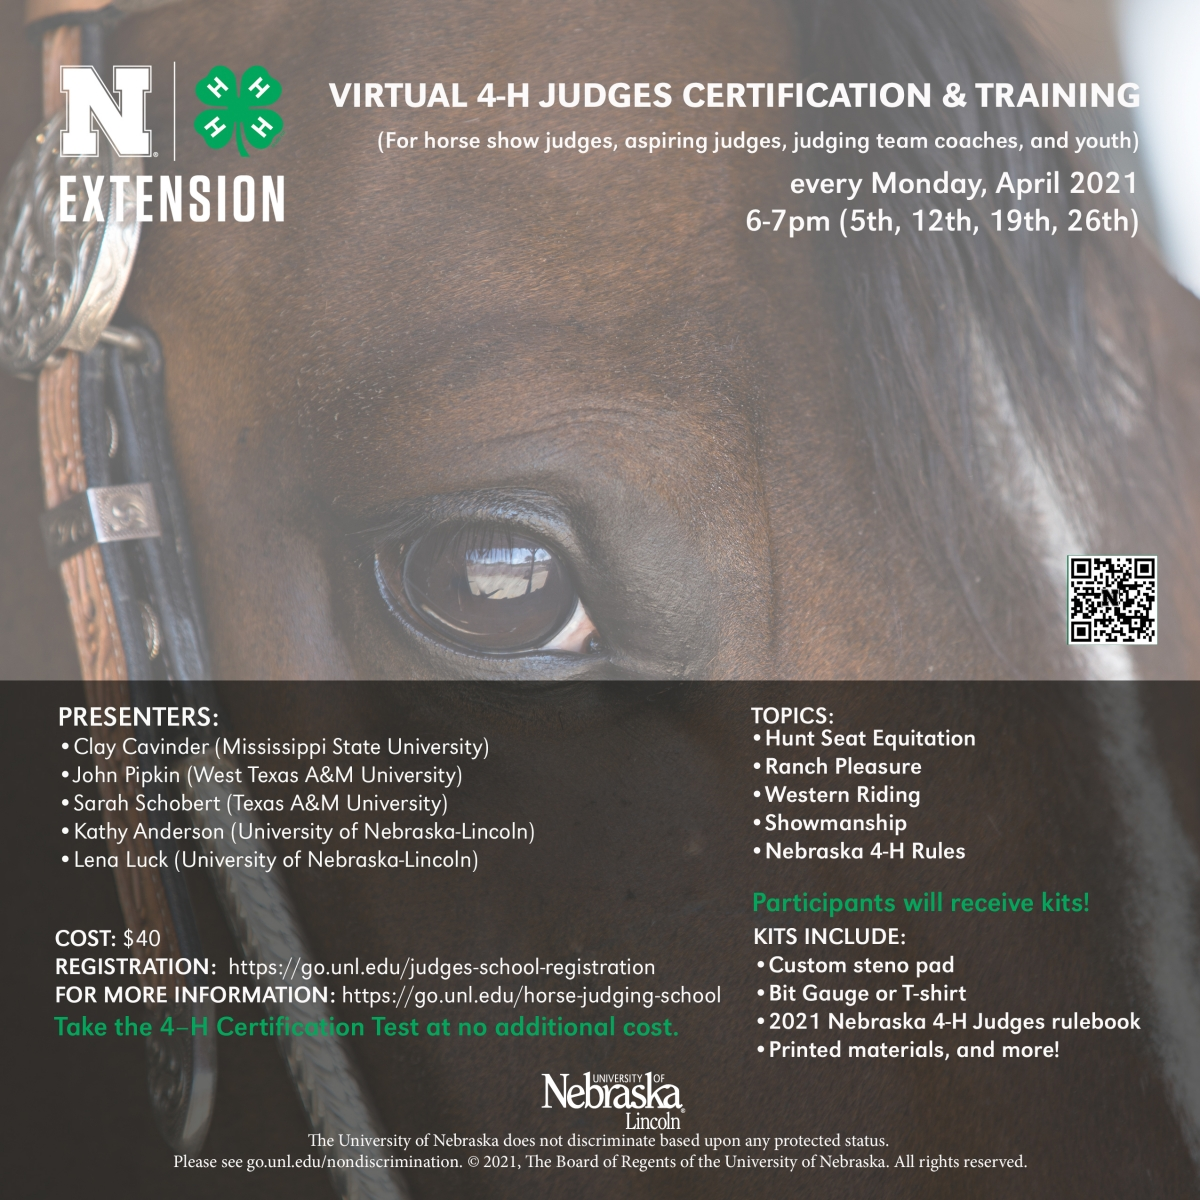 2021 Virtual 4-H Judges Certification & Training Flyer